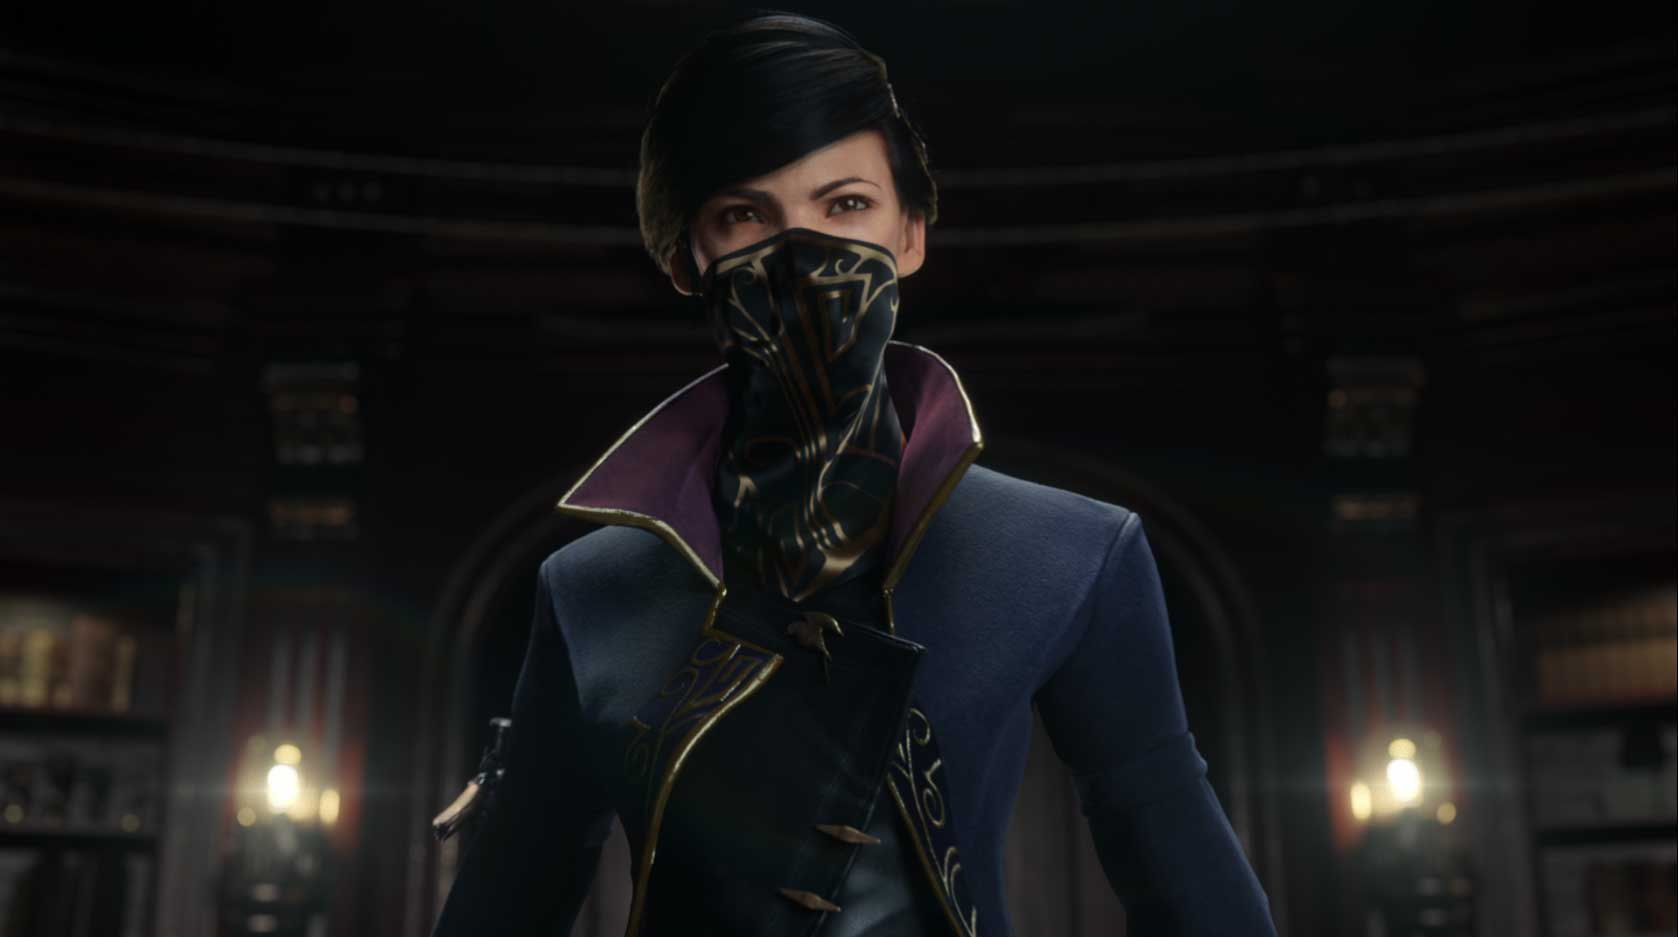 Fallout 4 and Game of Thrones actors join Dishonored 2 cast screenshot